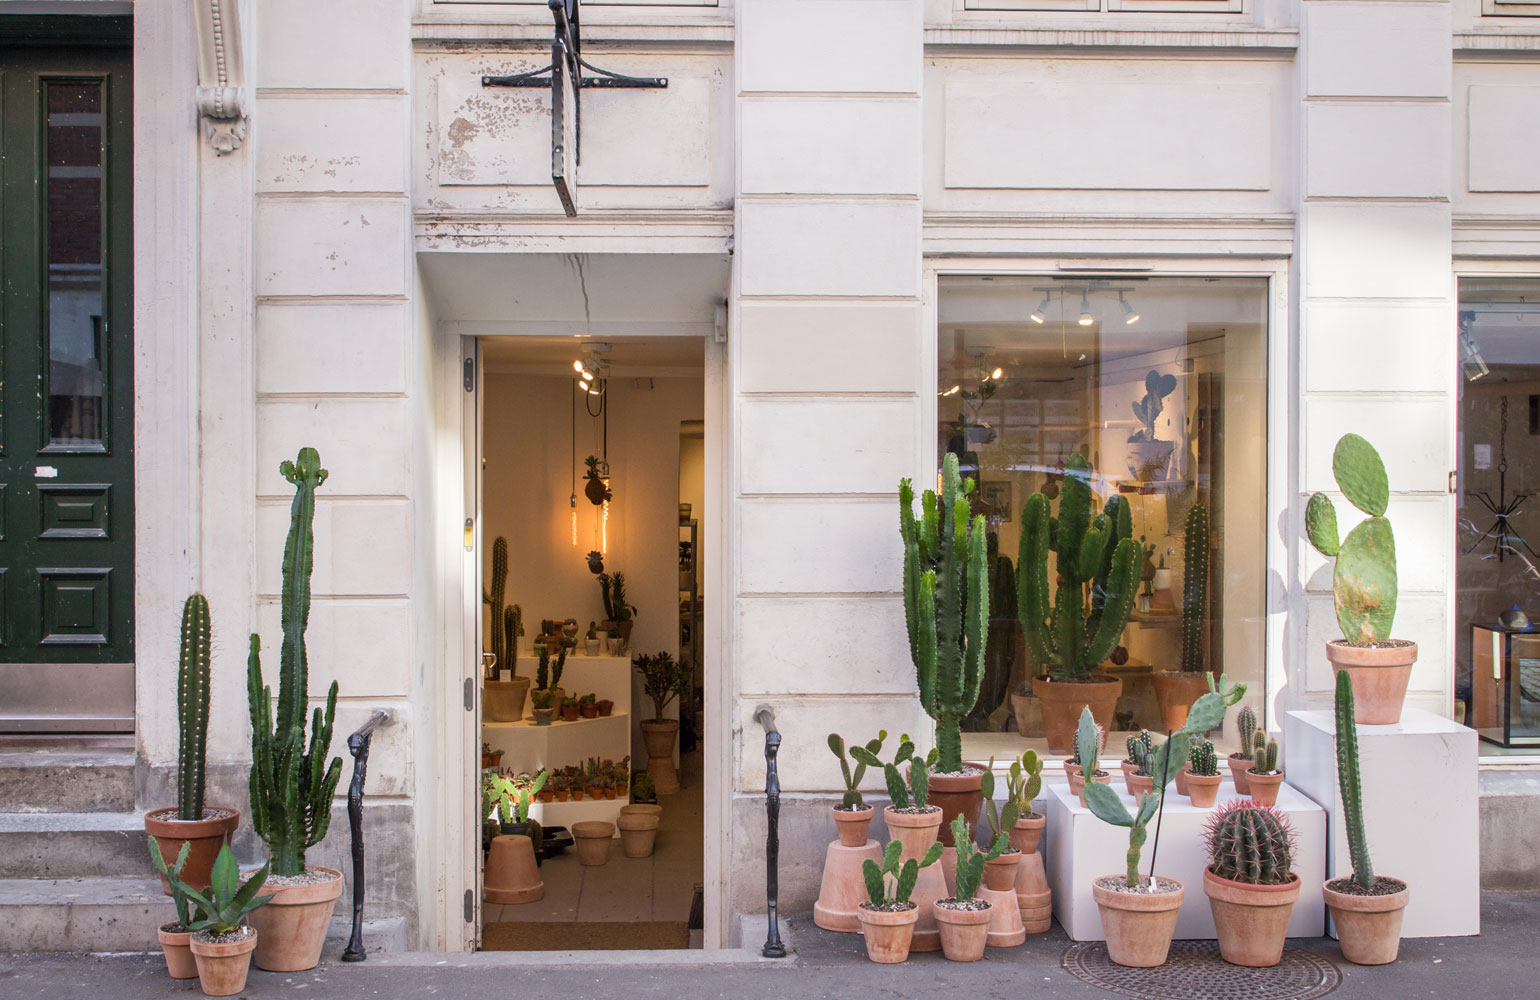 kaktus store, cactus shop by chiara stella home